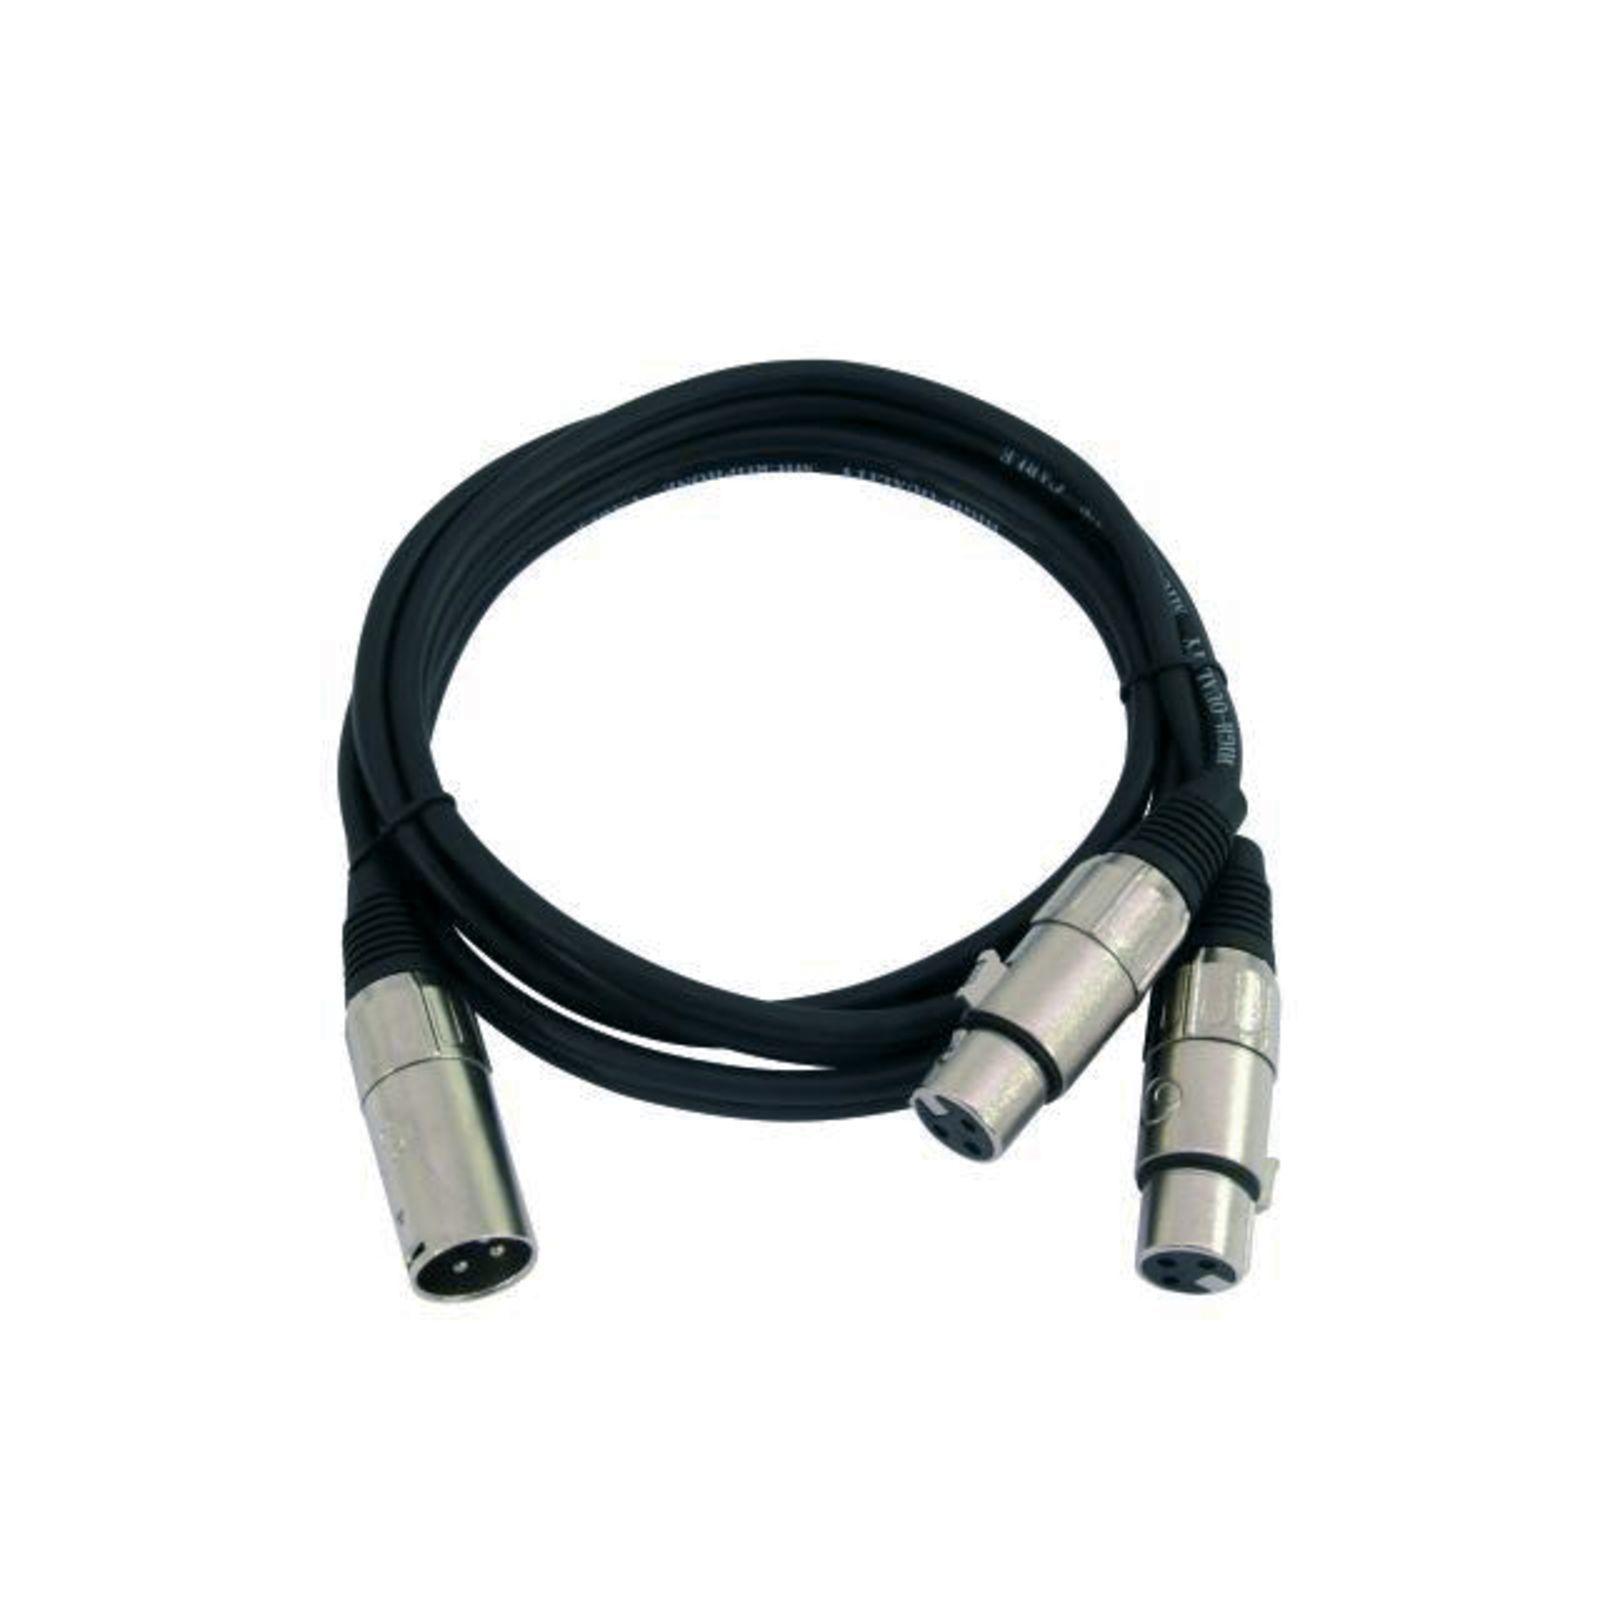 MUSIC STORE Splitter Cable 1,5m 2x Female XLR-Single Male XLR Produktbillede